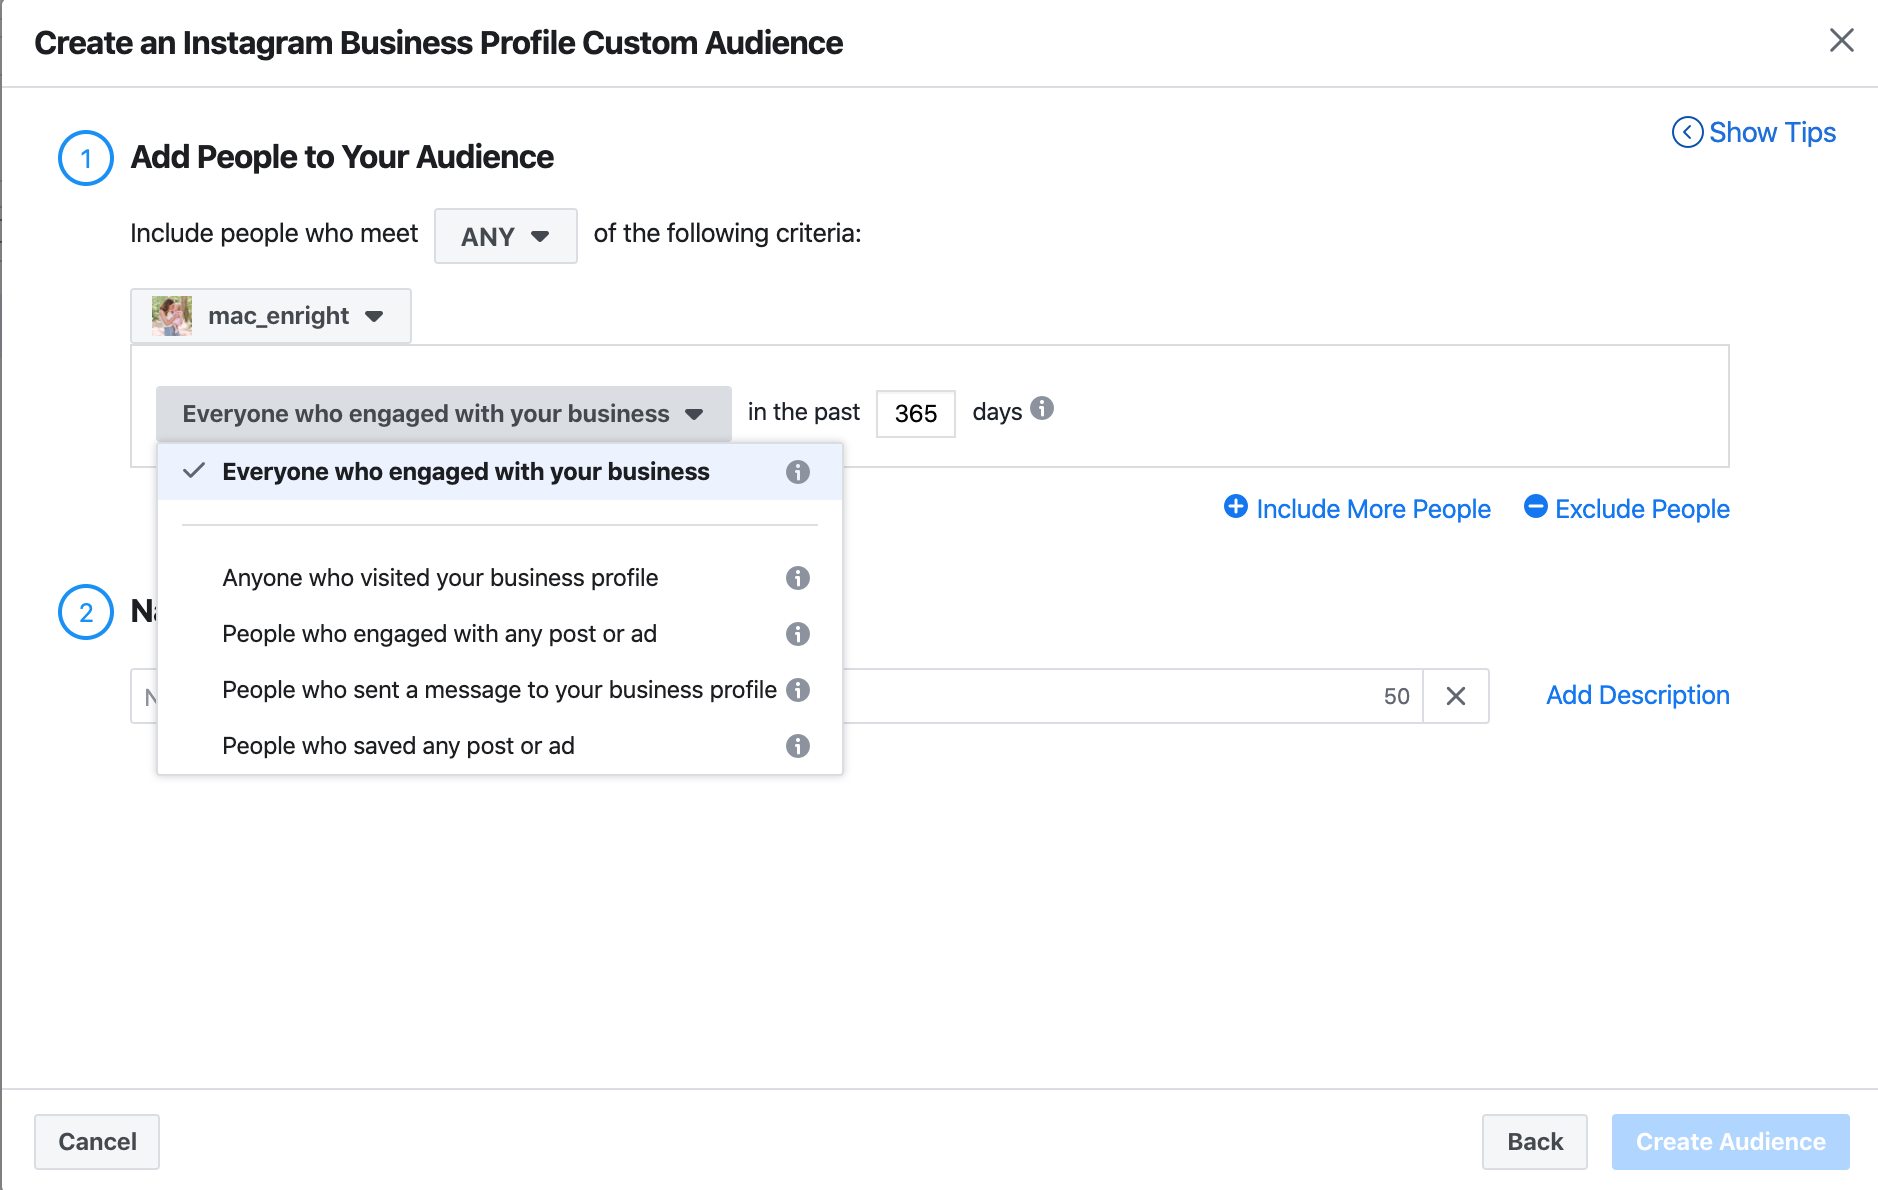 Types of influencer engagement audiences to create in Facebook Audience Manager